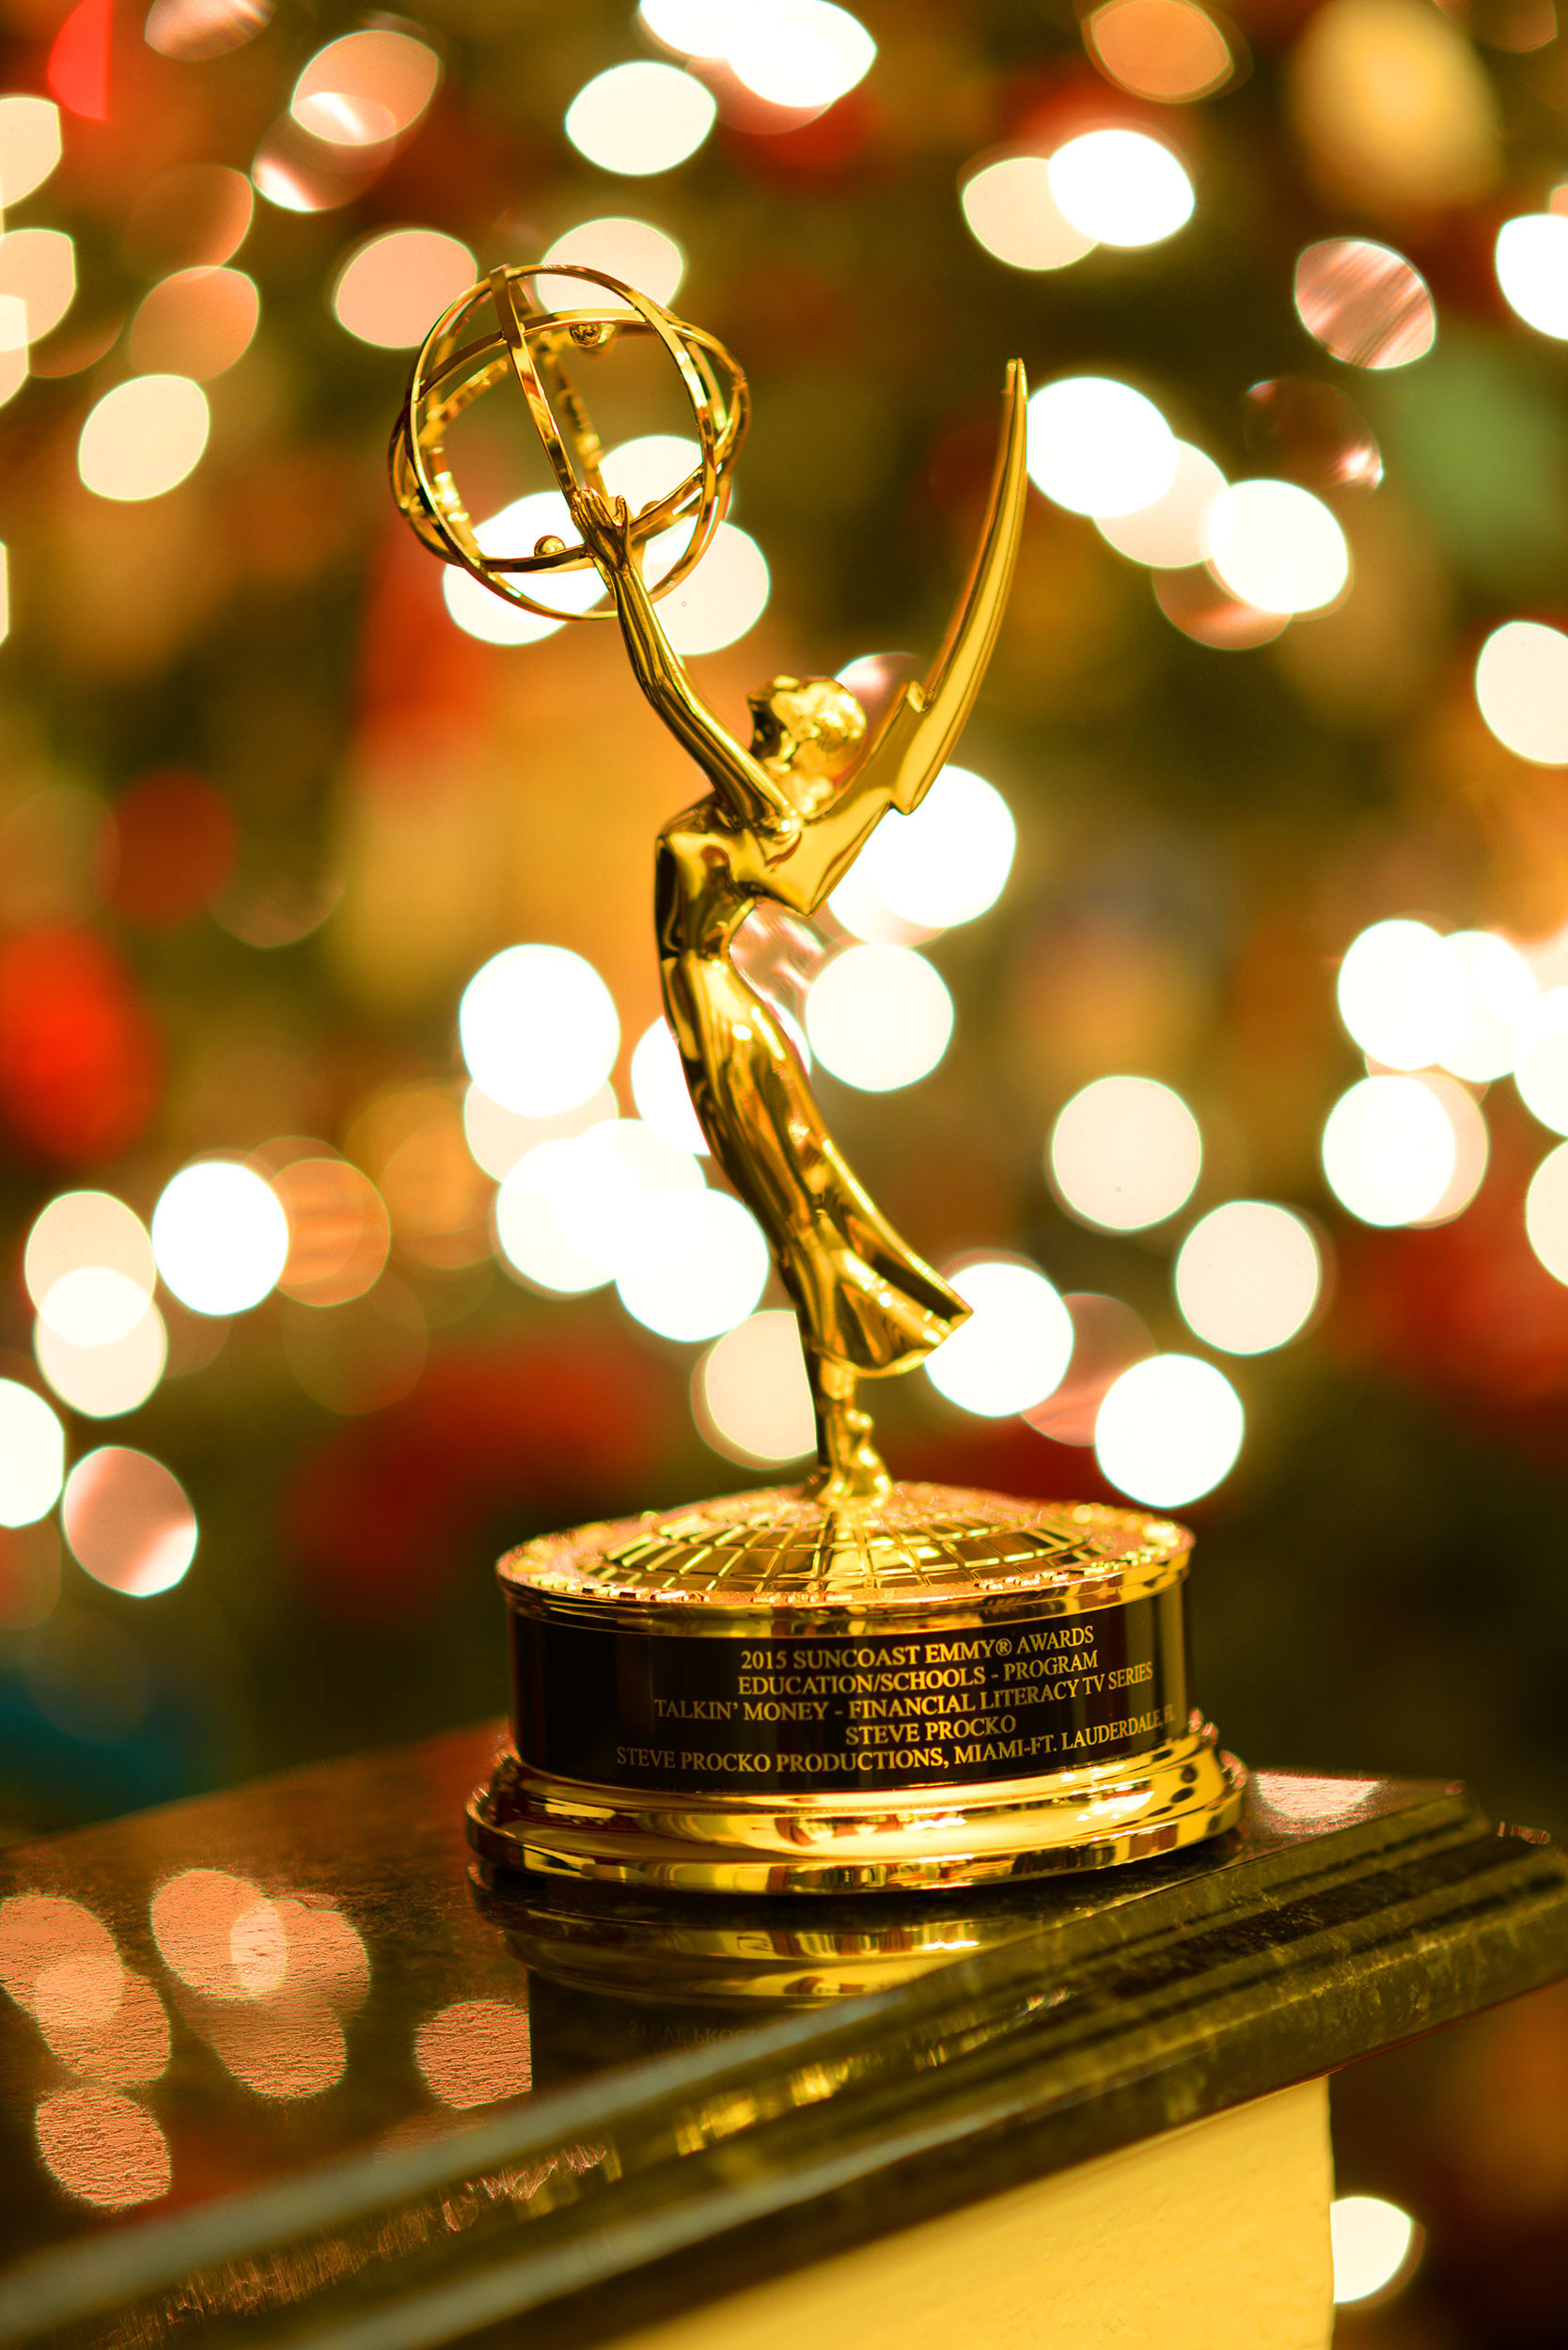 The National Academy of Television Arts and Sciences has awarded Steve Procko Productions an Emmy Award in the Educational Programming category for its Talkin Money Financial Literacy Educational Video program.